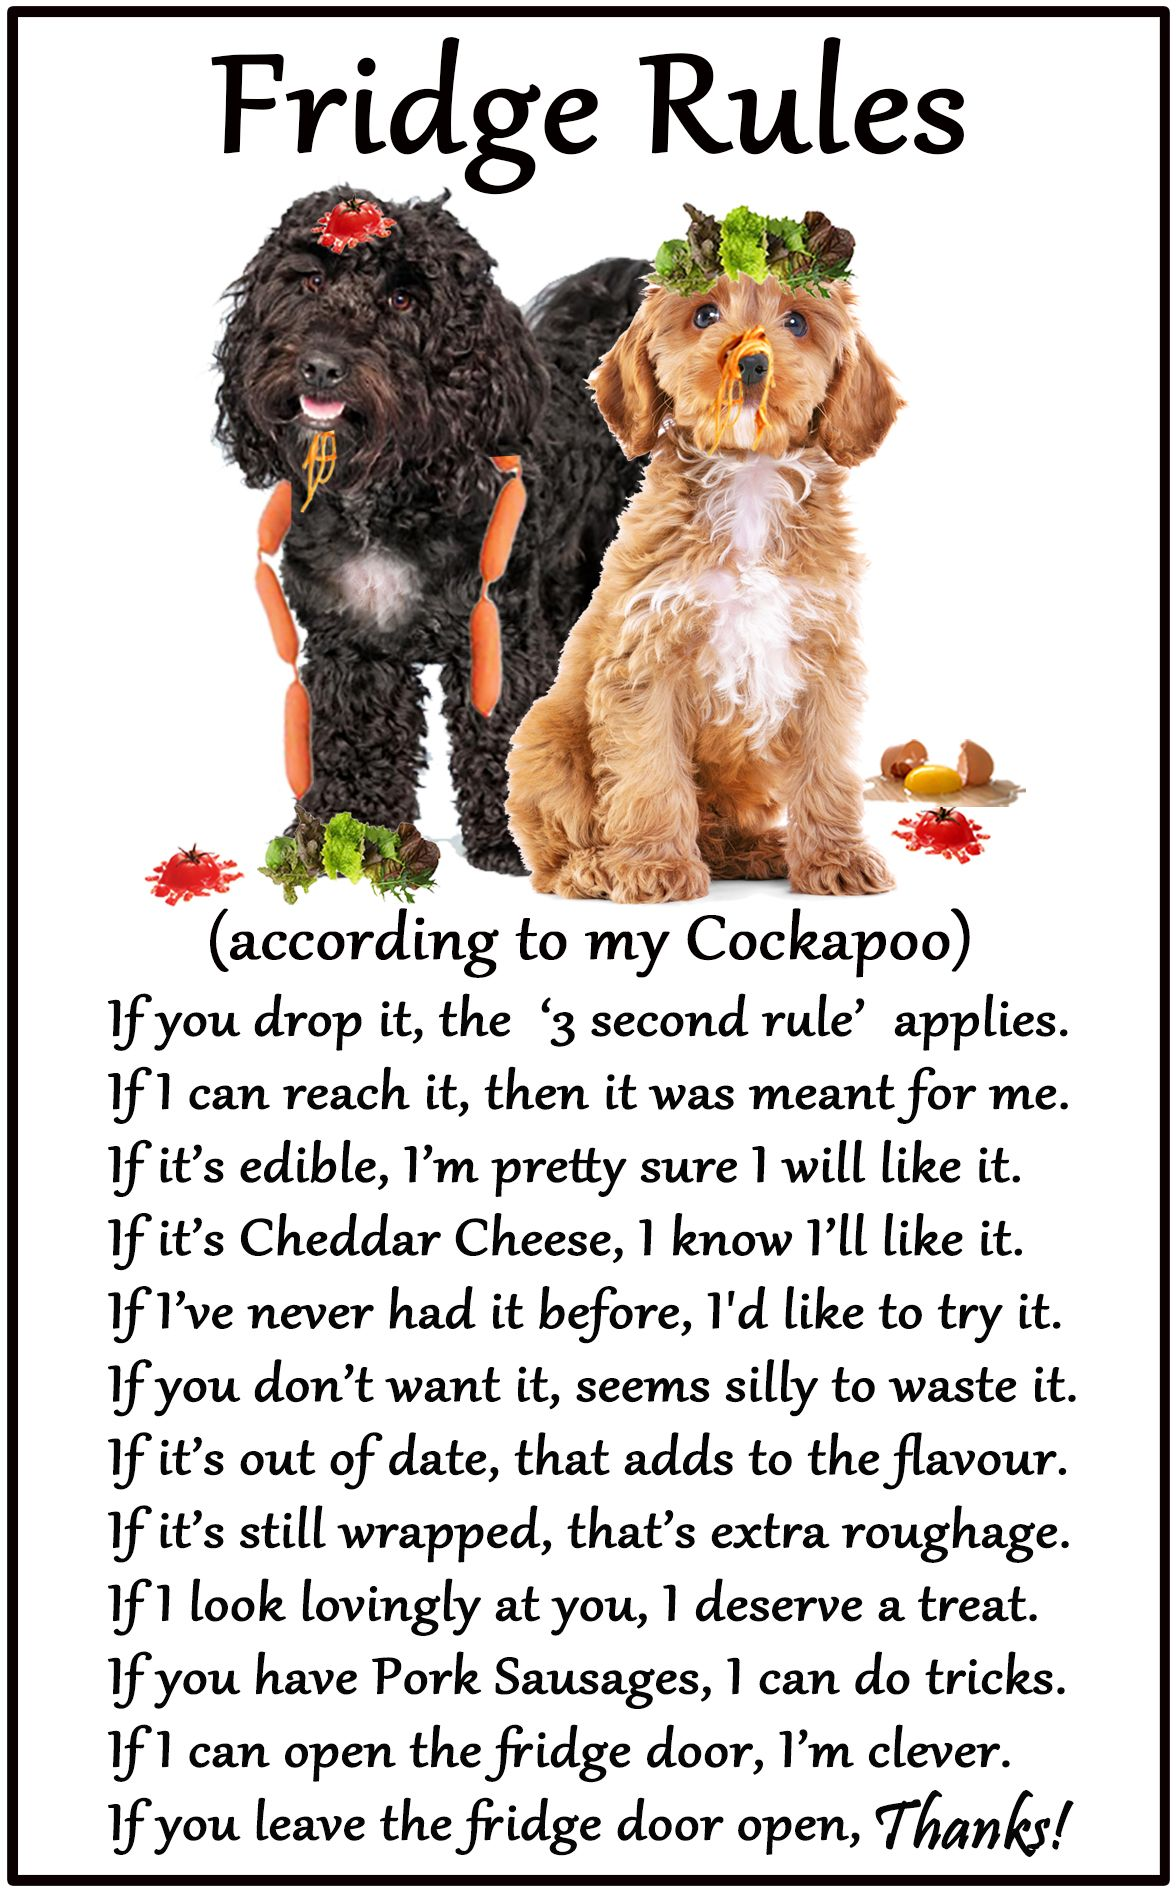 Cockapoo Humorous Magnetic Dog Fridge Rules Size 6 X 4 Available From Www Car Pets Co Uk And Www Amazon Co Uk Cockapoo Funny Dogs Dog Breeds [ 1890 x 1176 Pixel ]